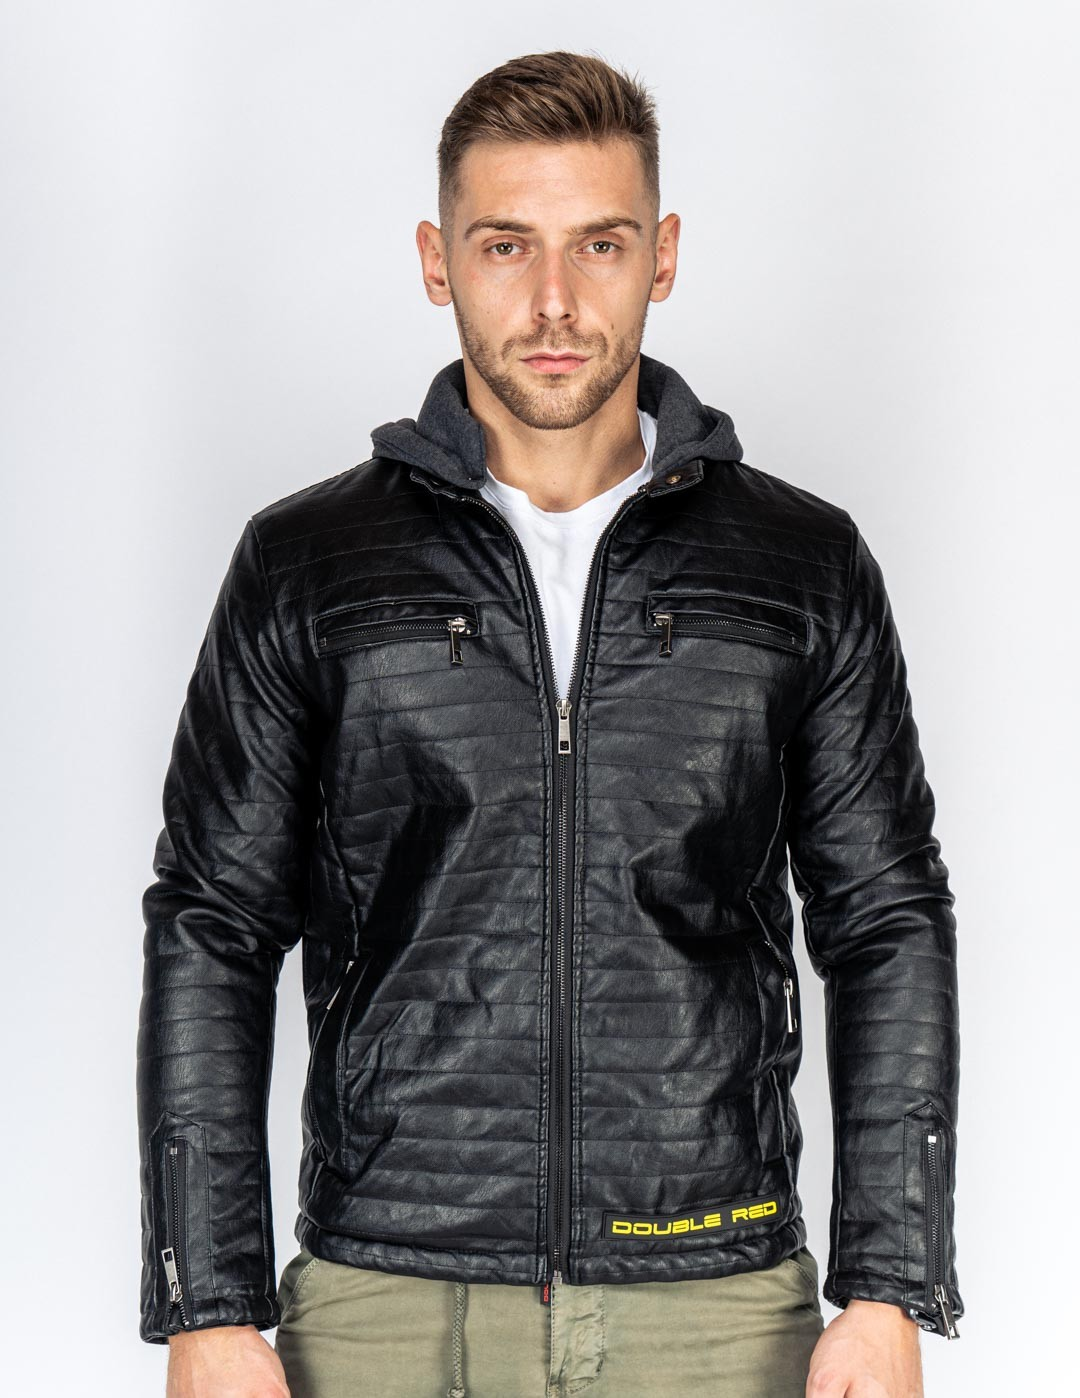 STREET HERO Leather Jacket